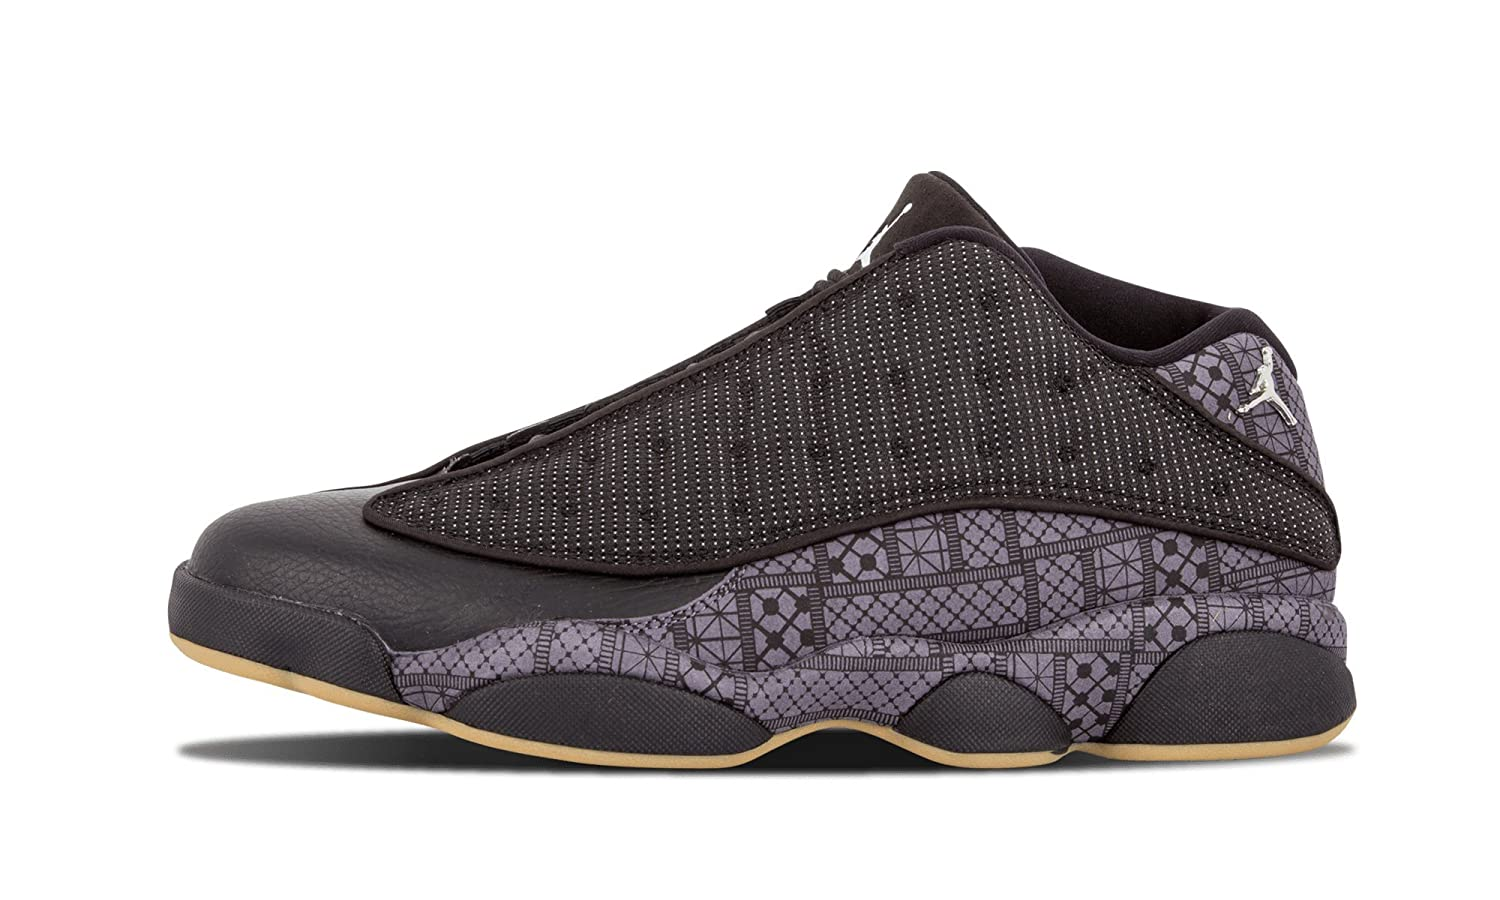 Nike Air Jordan 13 Retro Low Q54, Zapatillas de Baloncesto para Hombre, Negro/Gris/Blanco (Black/Chrome-Dark Grey-White), 43 EU